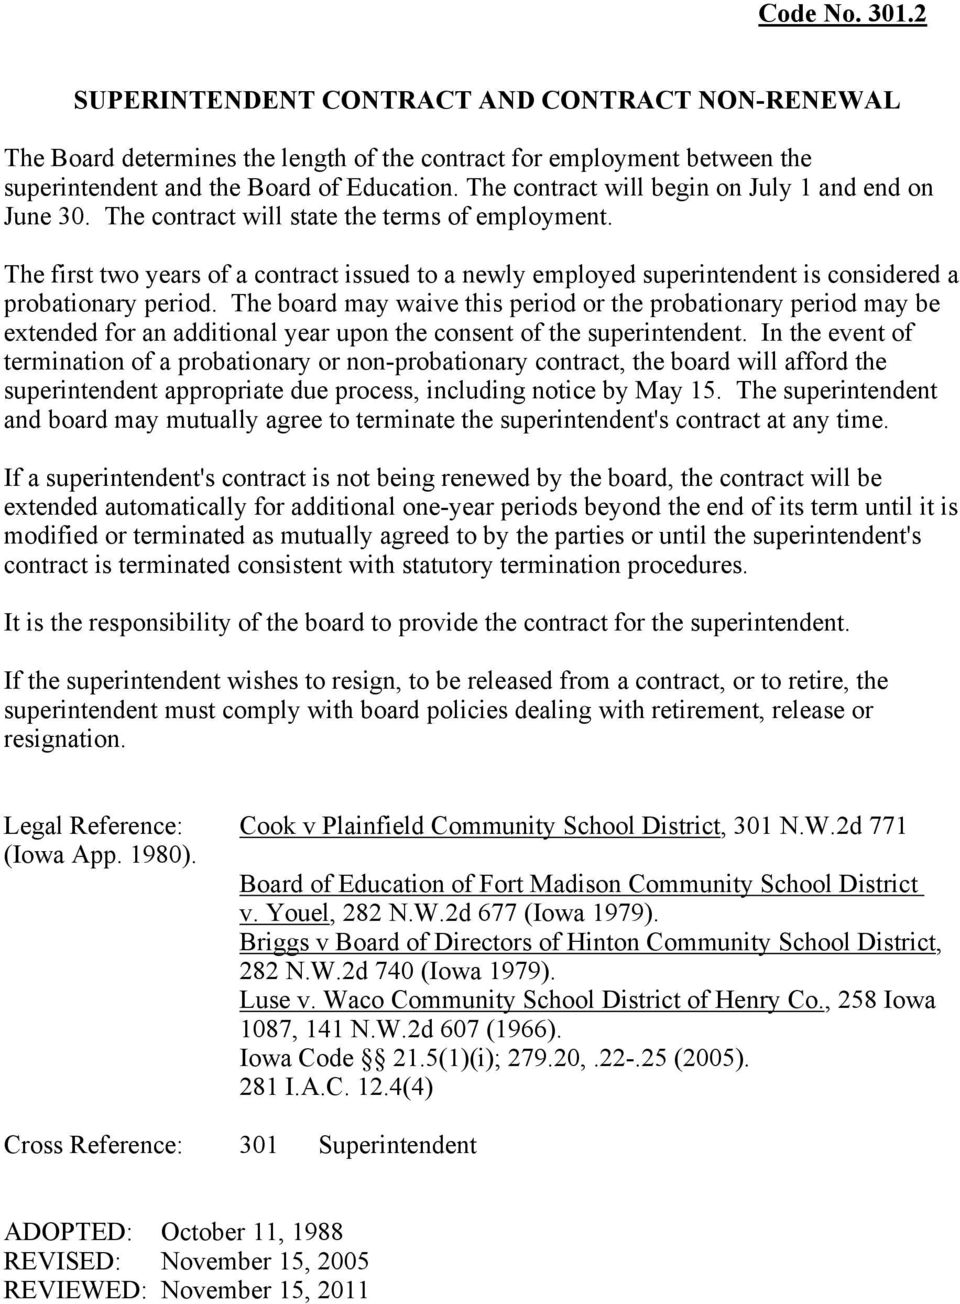 The first two years of a contract issued to a newly employed superintendent is considered a probationary period.